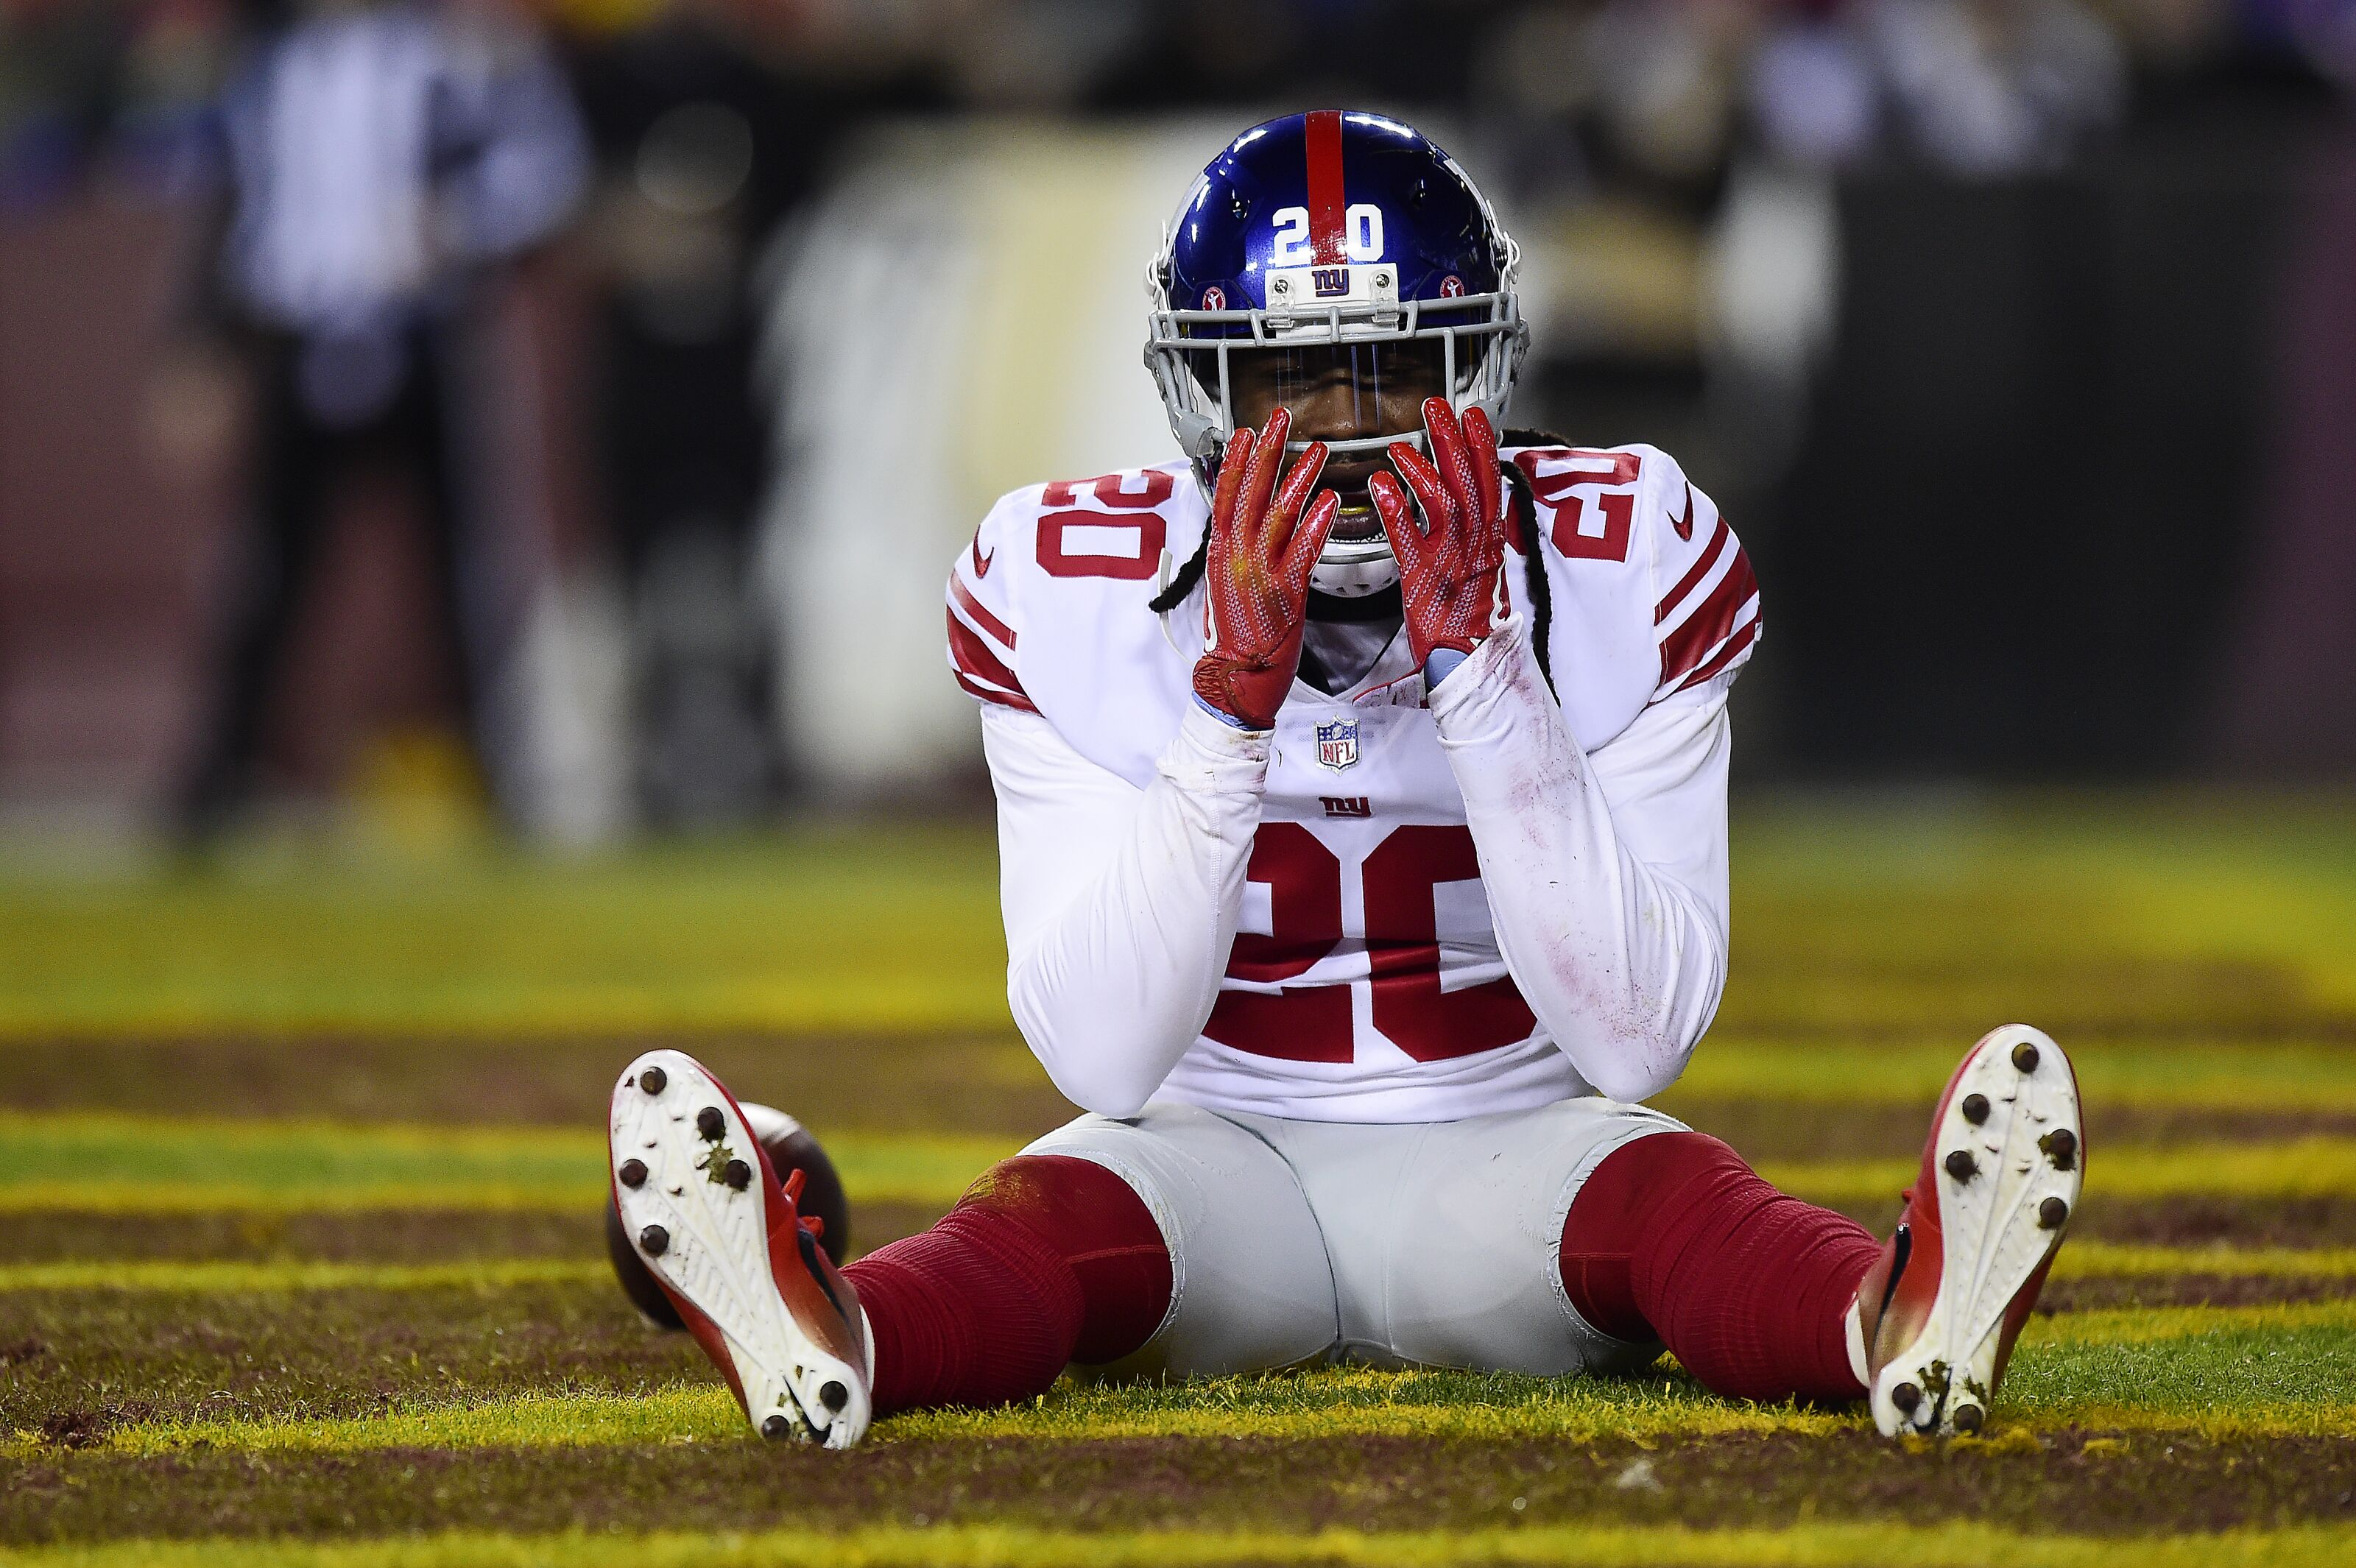 LANDOVER, MD - NOVEMBER 23: Cornerback Janoris Jenkins #20 of the New York Giants reacts after a play in the second quarter against the Washington Redskins at FedExField on November 23, 2017 in Landover, Maryland. (Photo by Patrick McDermott/Getty Images)